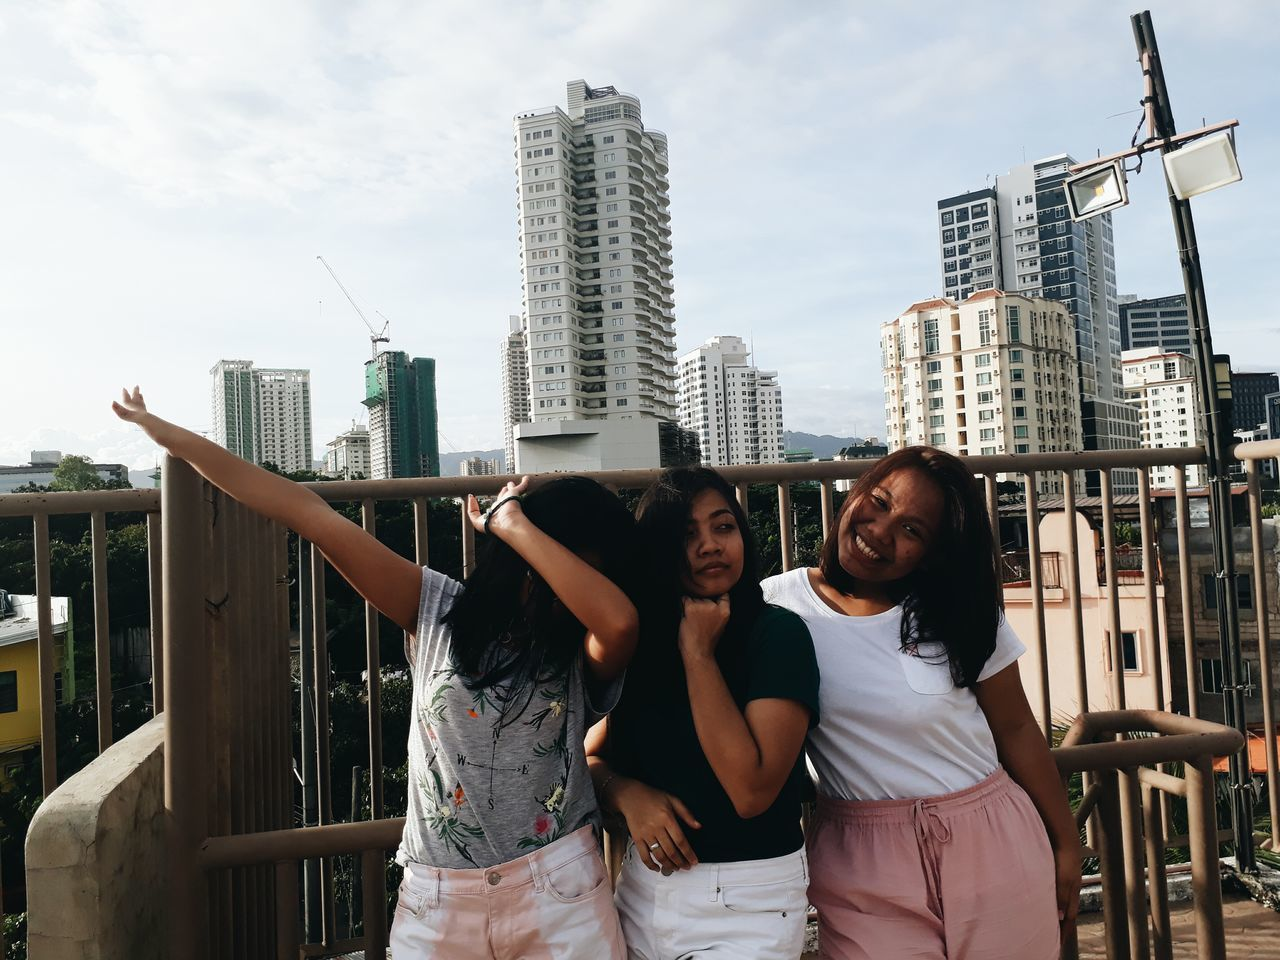 real people, building exterior, built structure, architecture, city, leisure activity, togetherness, two people, casual clothing, young women, front view, lifestyles, outdoors, skyscraper, standing, day, young adult, friendship, sky, bonding, smiling